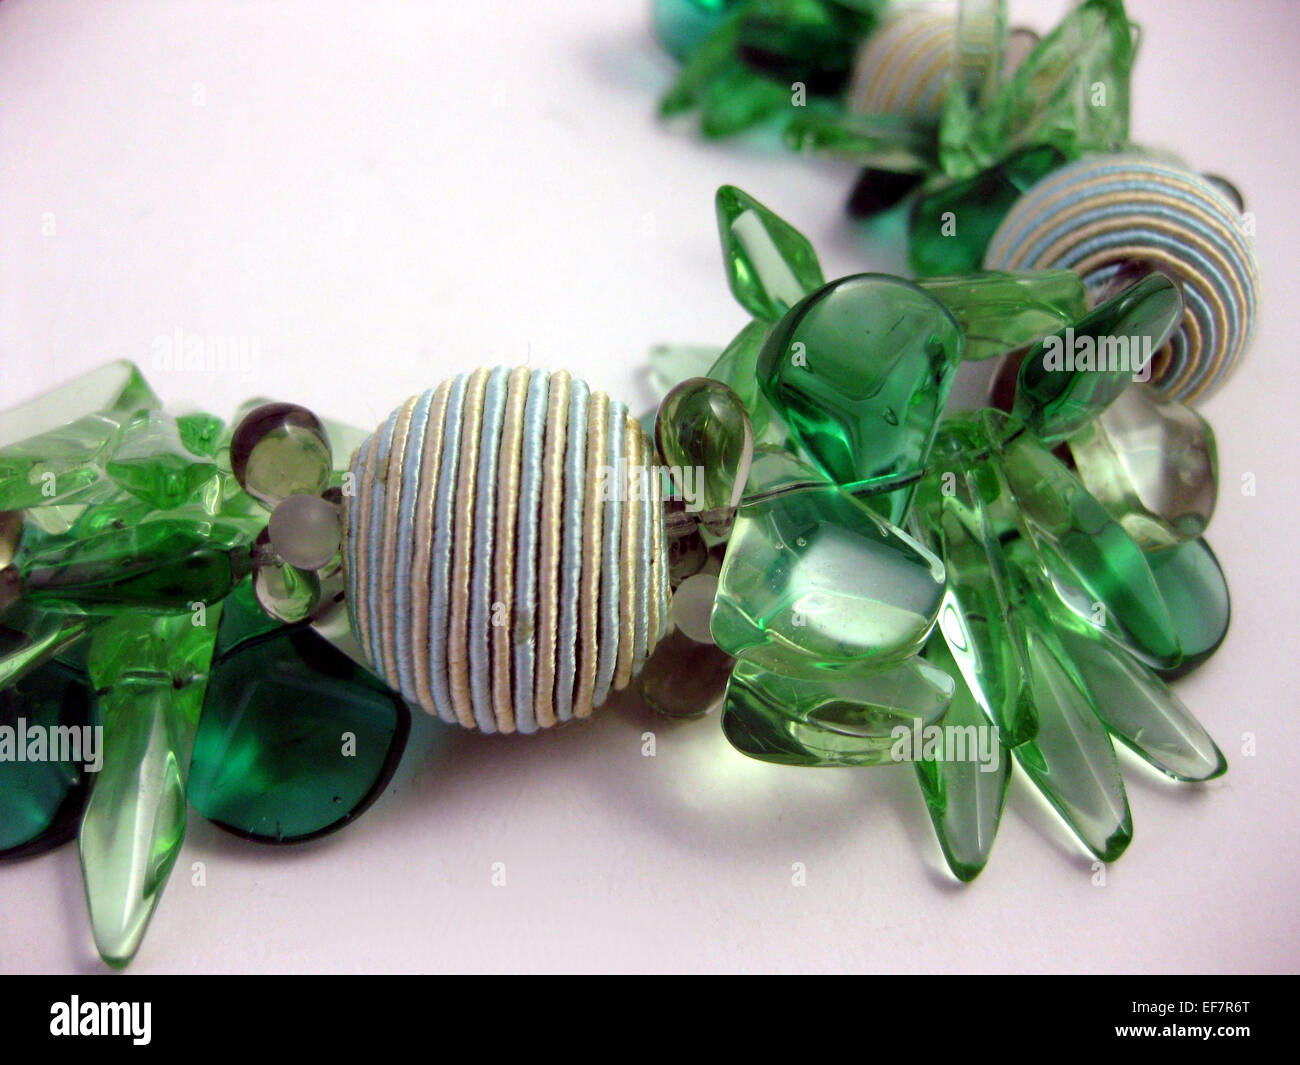 Green glass cluster necklace with cord beads - Stock Image